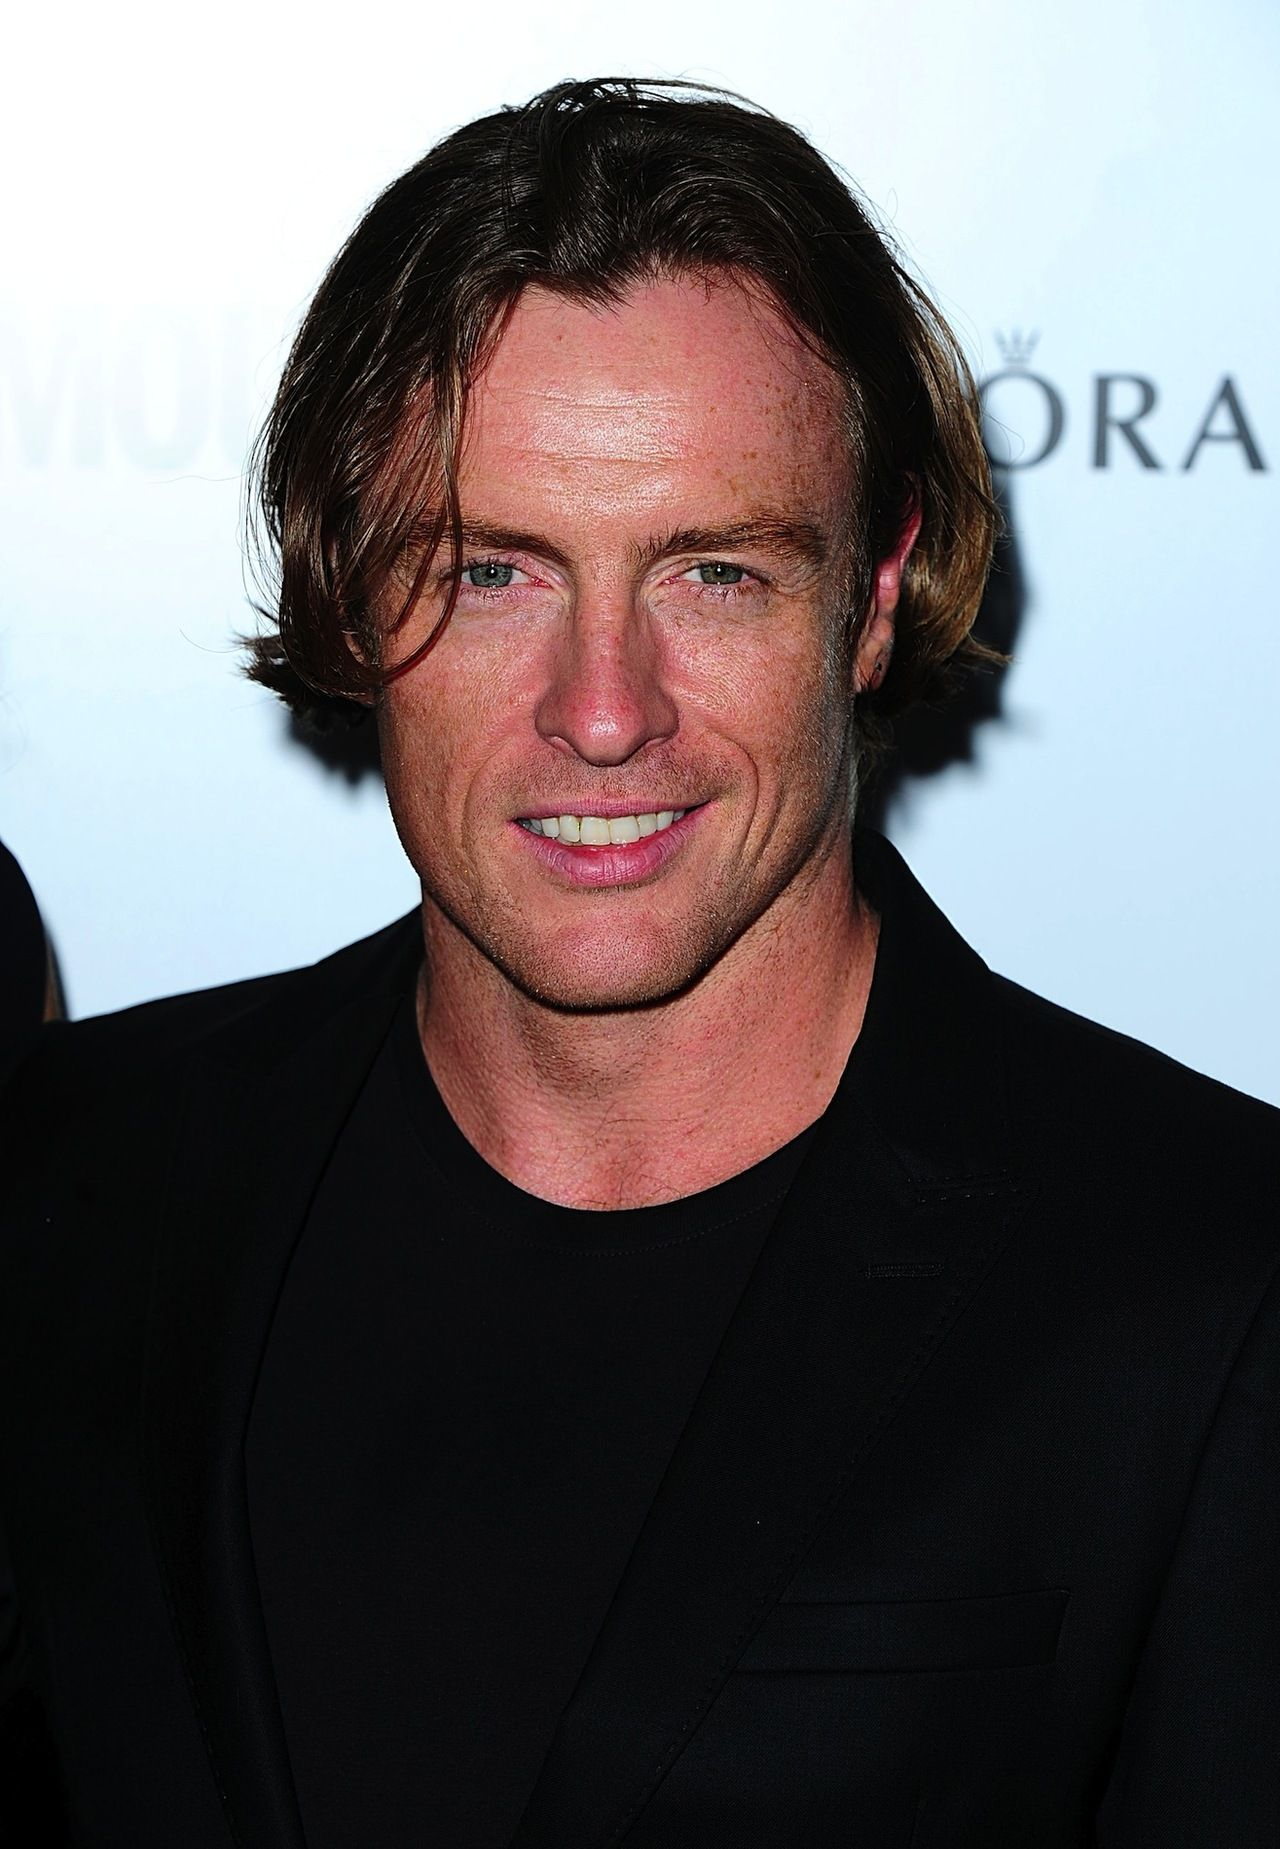 Communication on this topic: Jad Capelja, toby-stephens-born-1969/